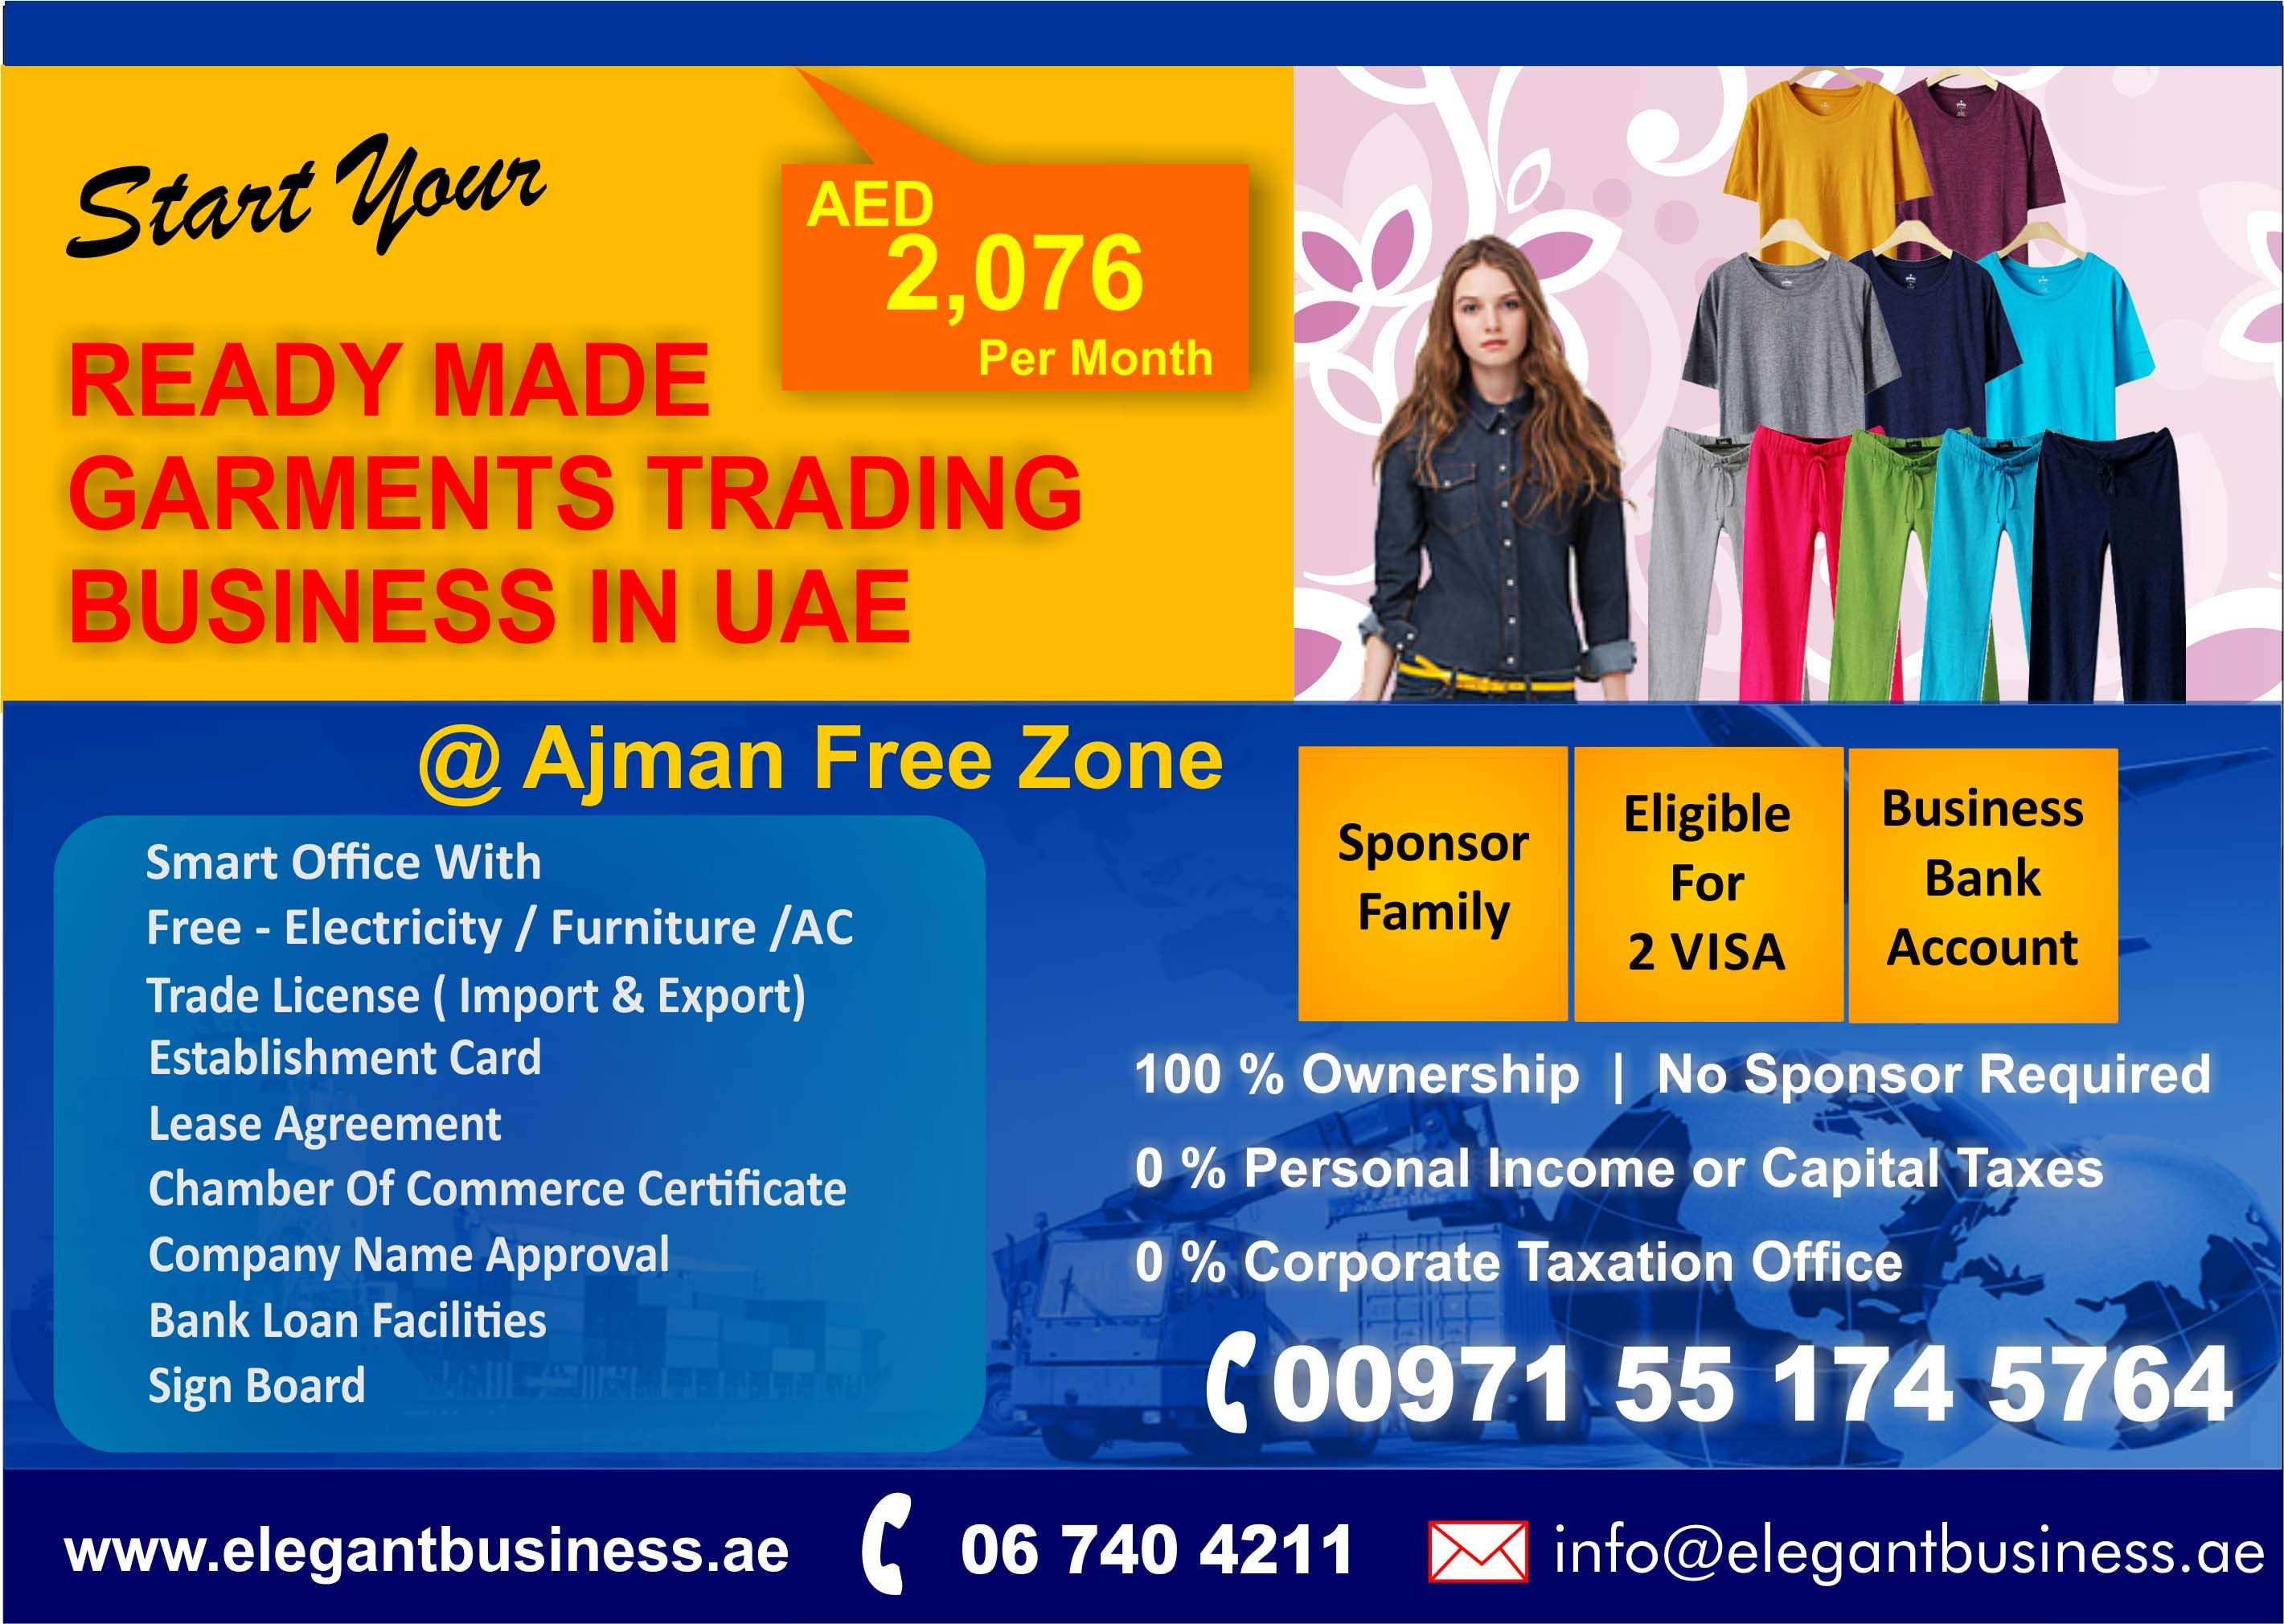 Elegant Business Services Ready Made Garments Trading License